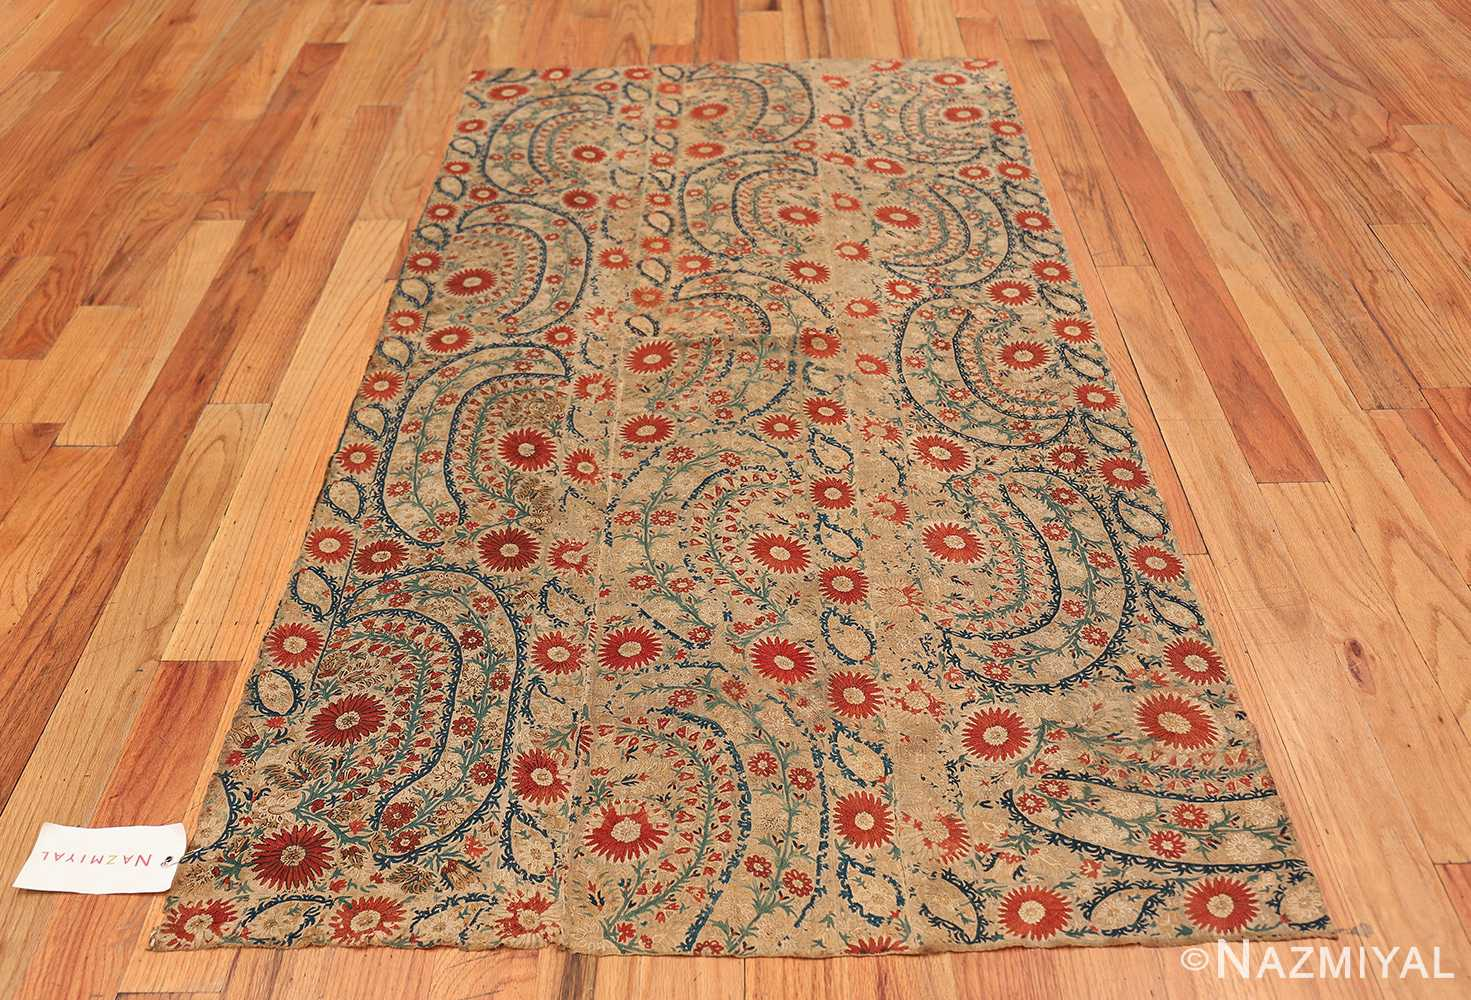 Antique 17th Century Ottoman Textile 41498 Whole Design Nazmiyal